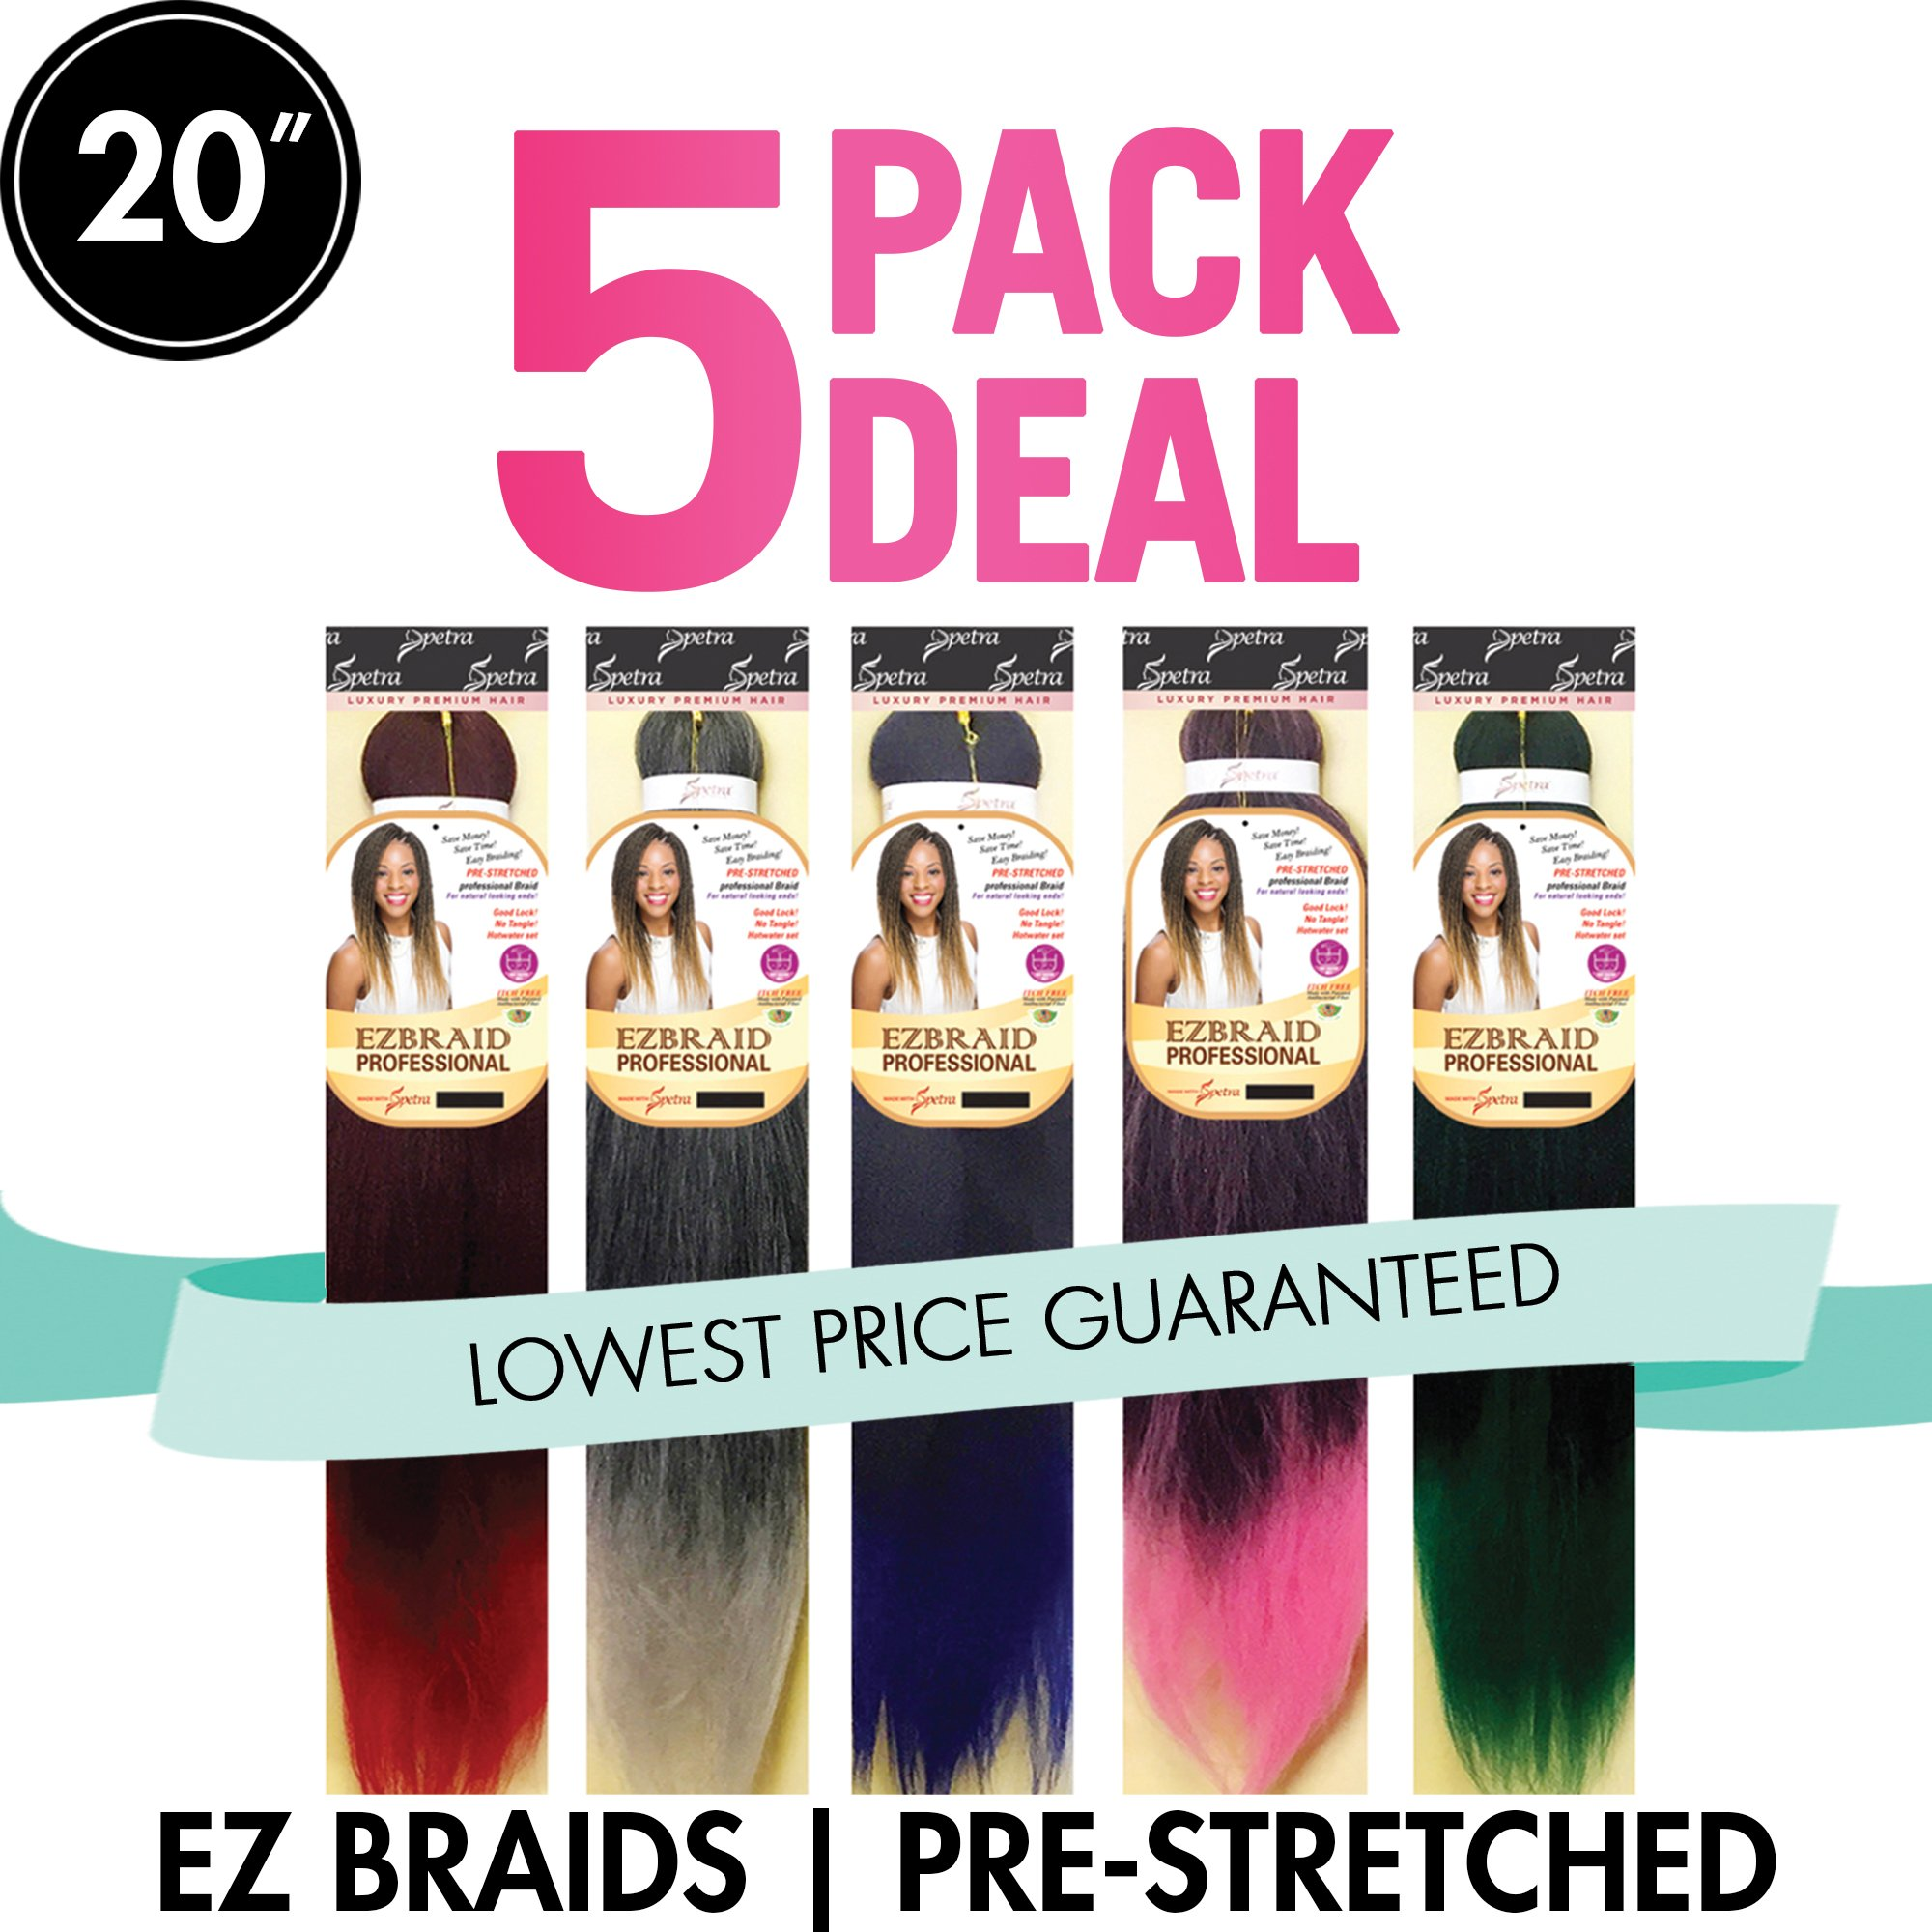 Spetra Innocence EZ Braid Professional (Pre-Stretched Braid) 20'' 5 Pack (Color #T2/613)